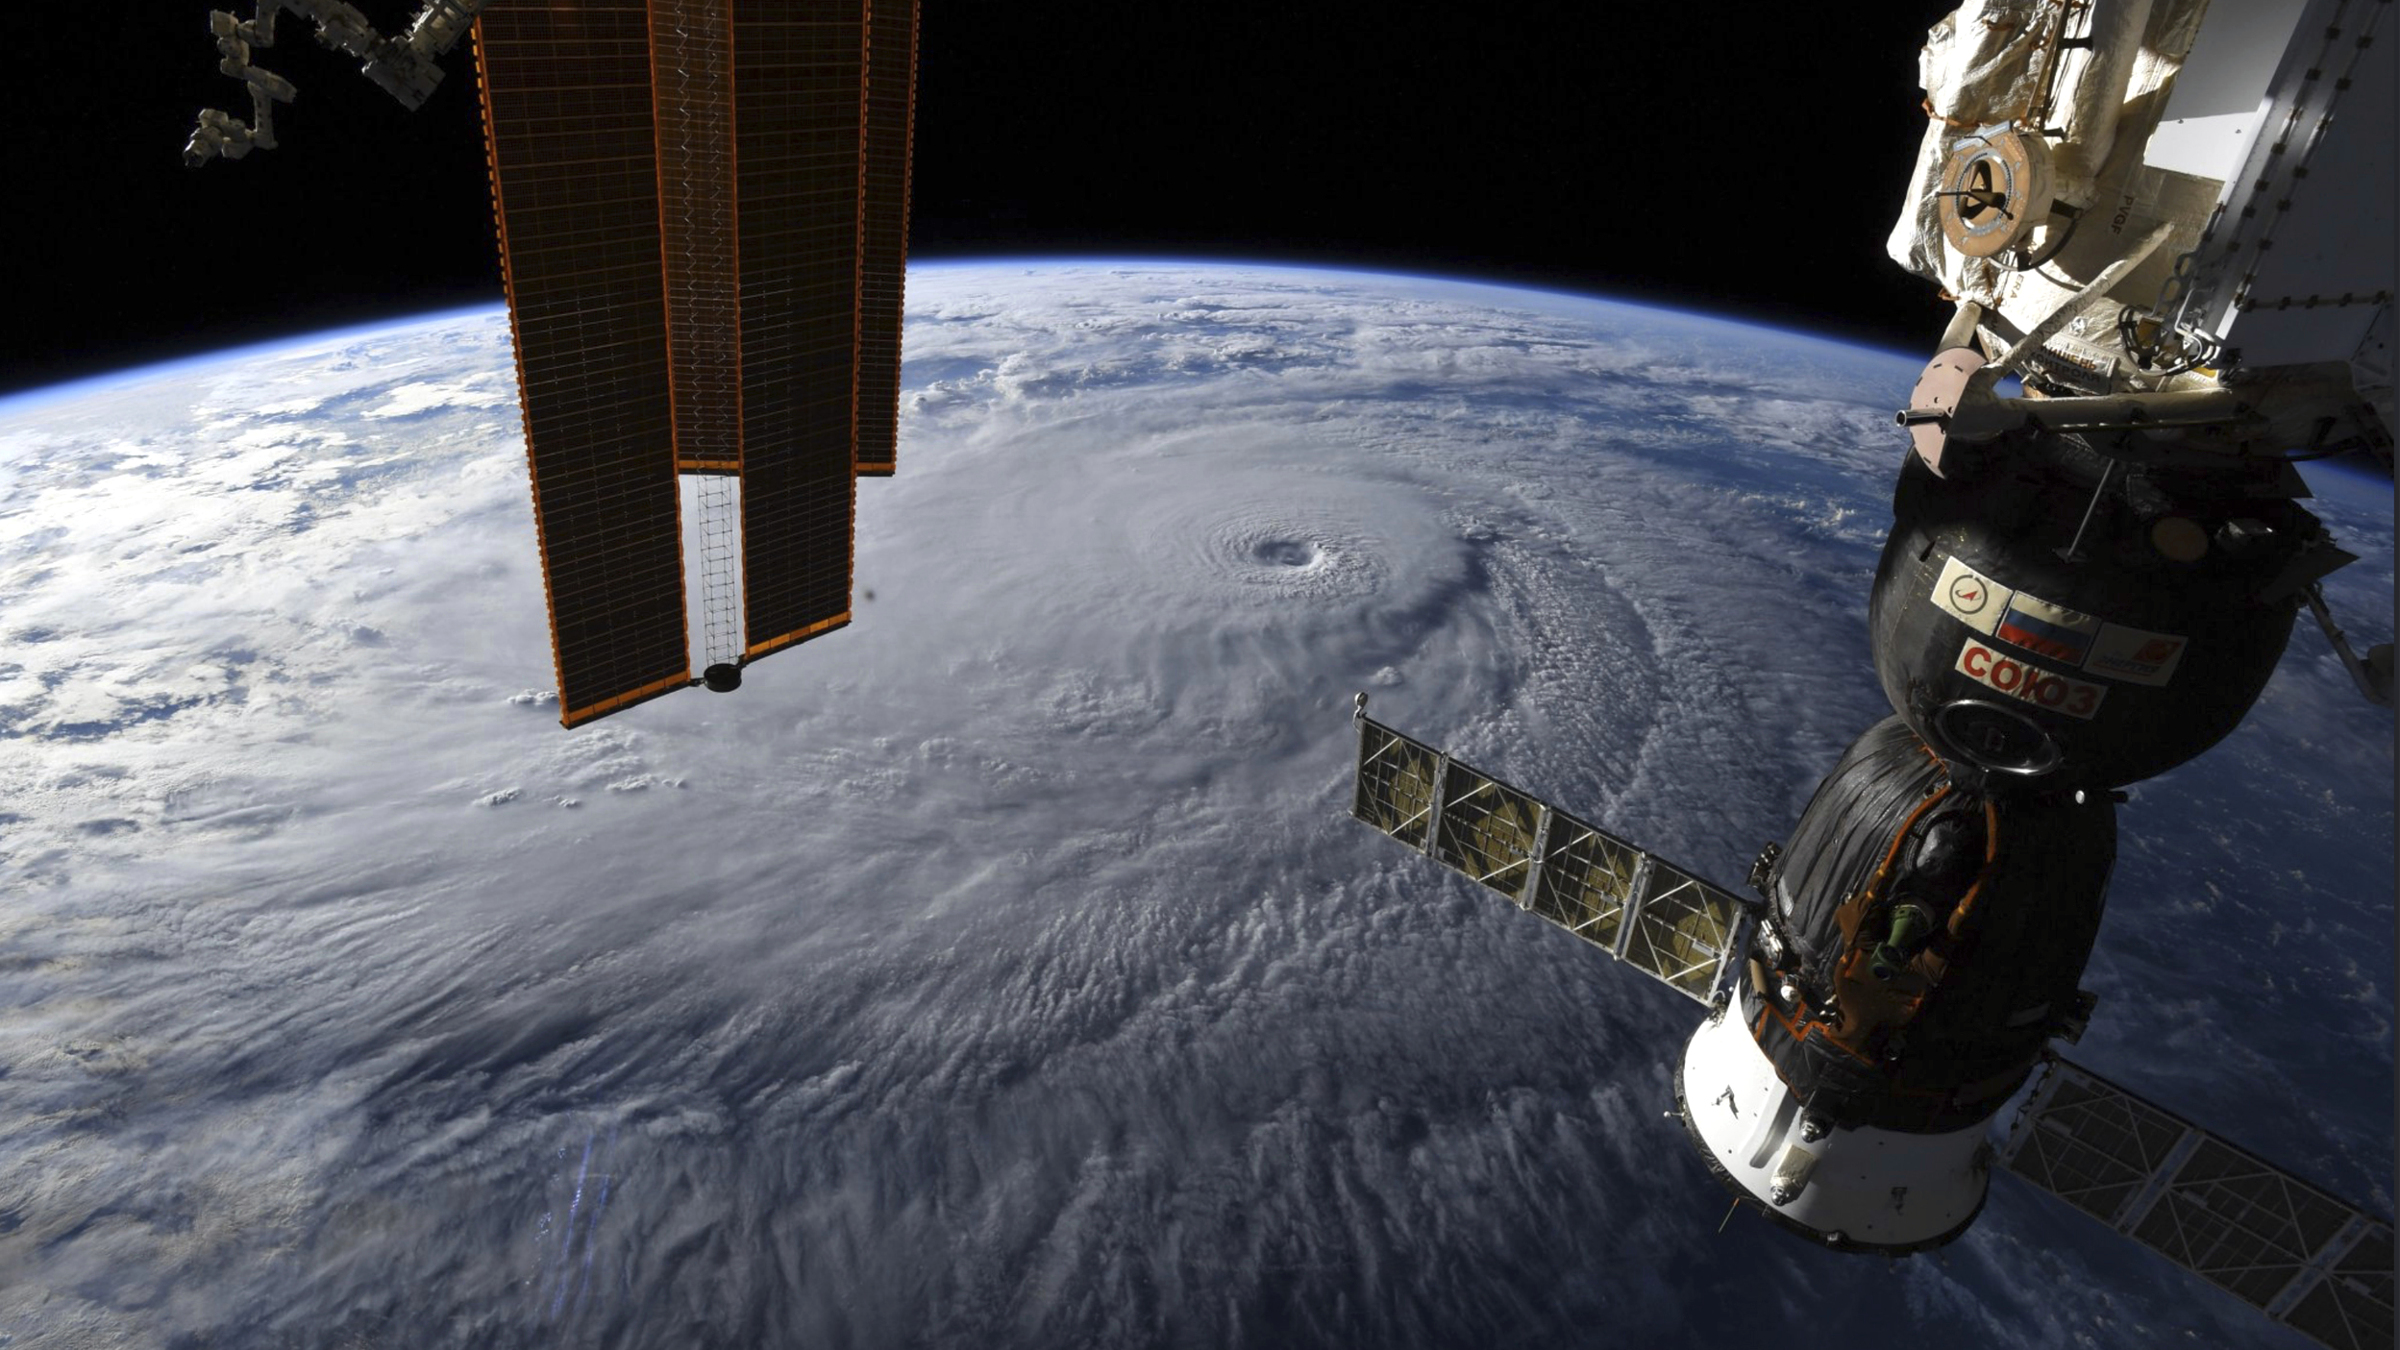 This image provided by NASA on Wednesday, Aug. 22, 2018 shows Hurricane Lane as seen from the International Space Station. The National Weather Service says the hurricane will still pack a wallop for Hawaii on Thursday before gradually slowing over the next two days. Early Wednesday, the hurricane was 320 miles (515 kilometers) south of Hilo on Hawaii Island and moving northwest toward other islands.